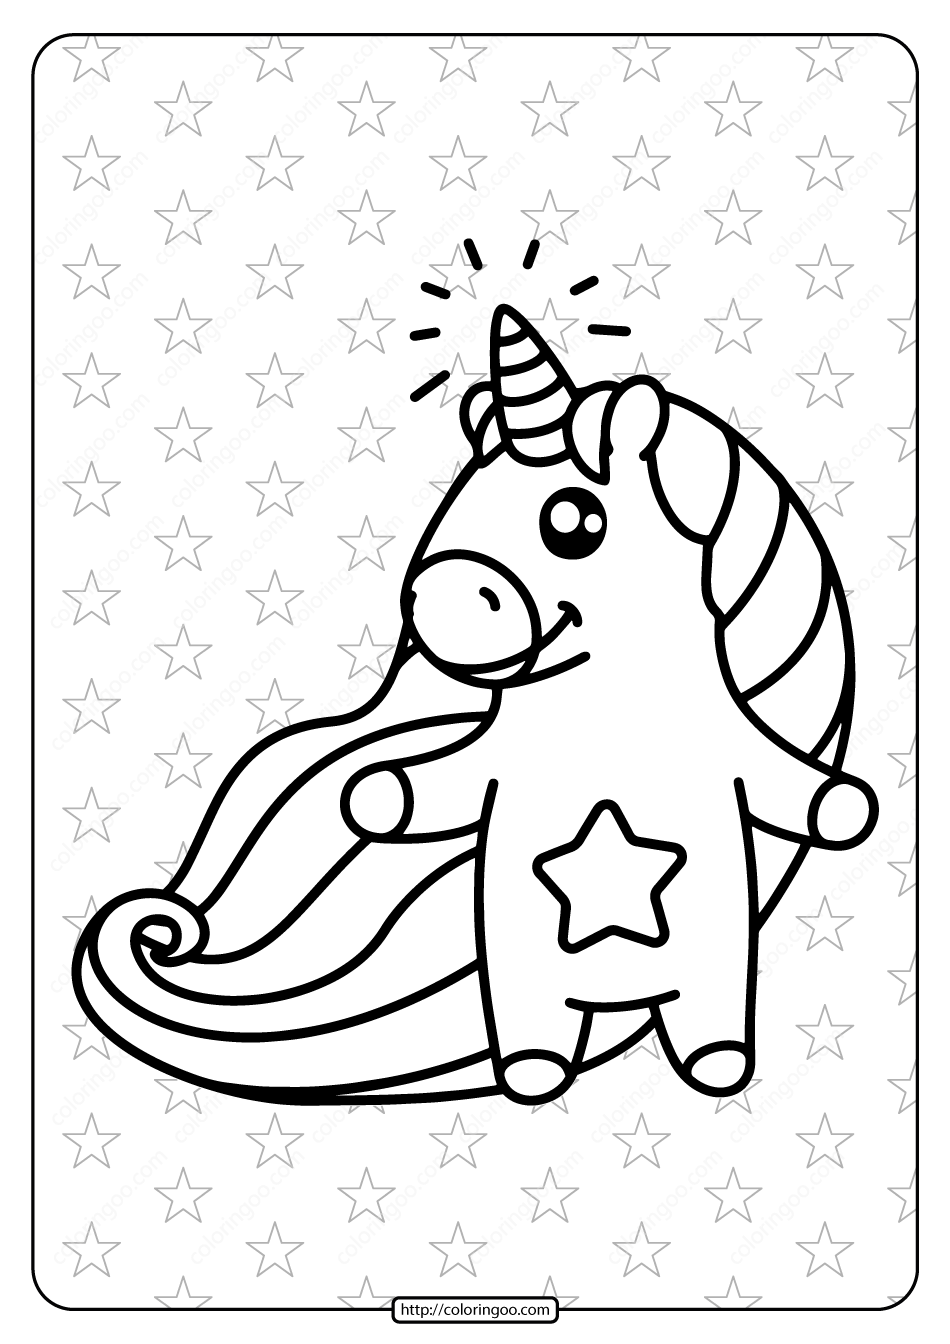 Printable Unicorn With Star Belly Coloring Page Unicorn Coloring Pages Unicorn Printables Coloring Pages